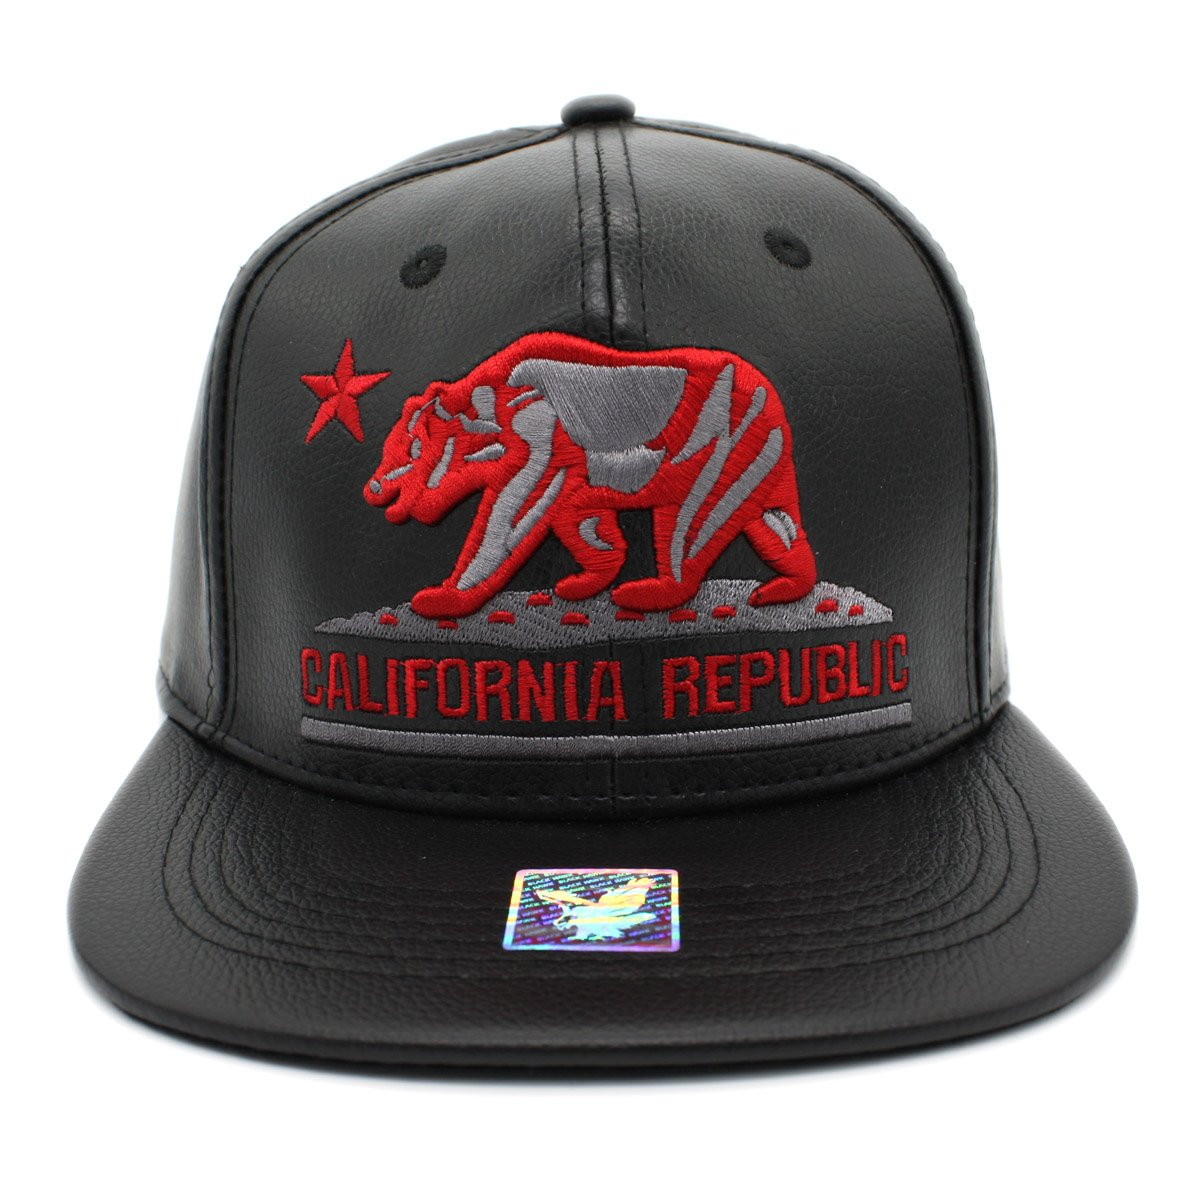 Embroidered CALIFORNIA REPUBLIC PU leather Flat Bill Snapback Cap (BLACK)  at Amazon Men s Clothing store  086fa69c8997